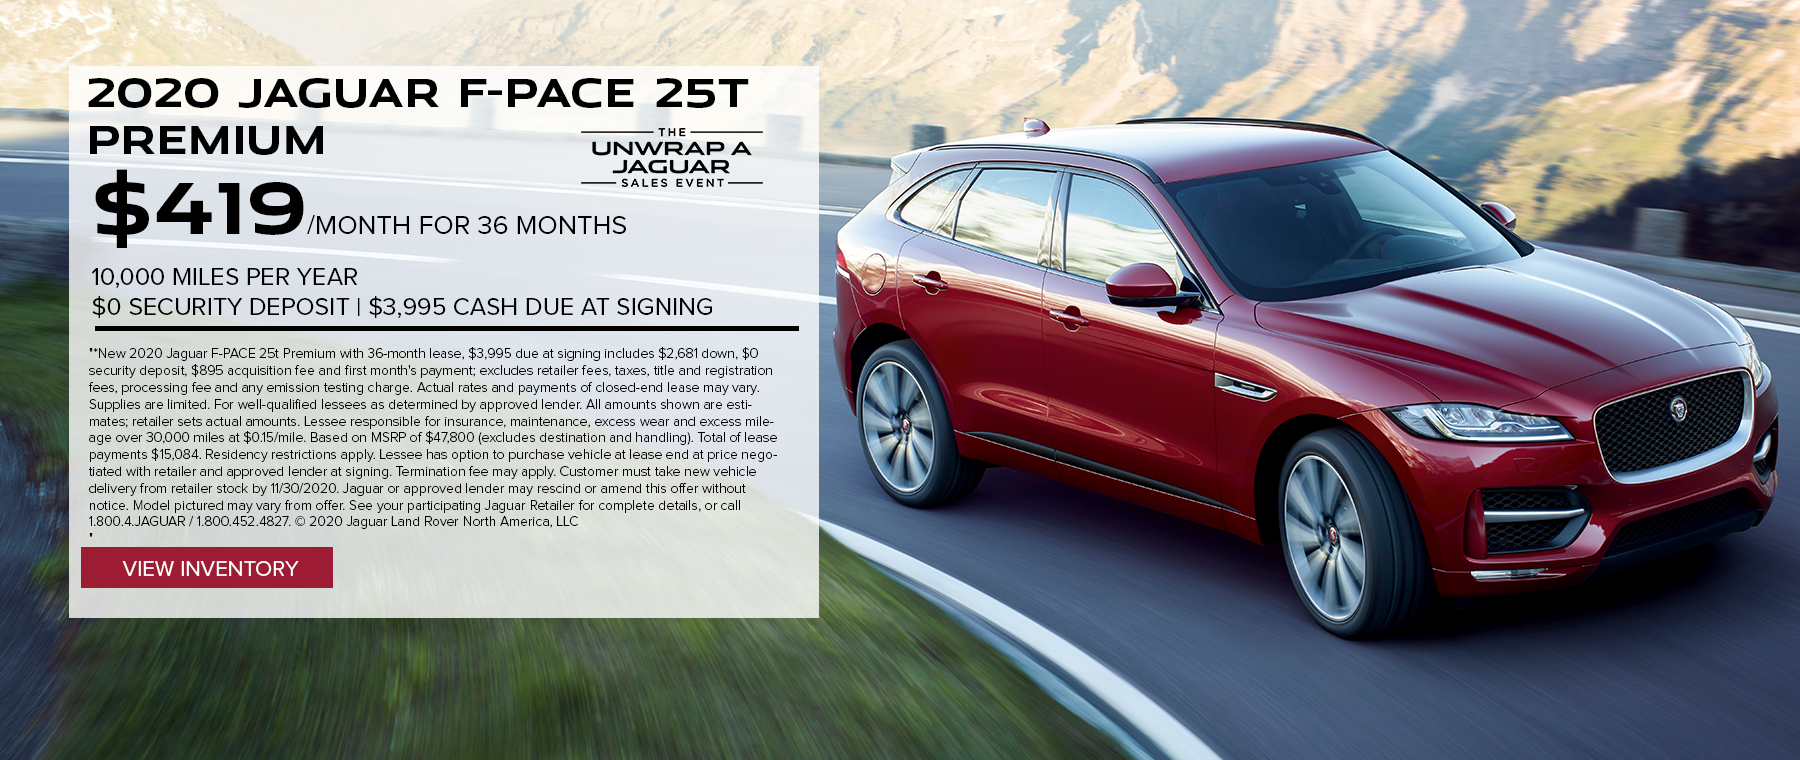 2020 JAGUAR F-PACE 25T PREMIUM. $419 PER MONTH. 36 MONTH LEASE TERM. $3,995 CASH DUE AT SIGNING. $0 SECURITY DEPOSIT. 10,000 MILES PER YEAR. EXCLUDES RETAILER FEES, TAXES, TITLE AND REGISTRATION FEES, PROCESSING FEE AND ANY EMISSION TESTING CHARGE. OFFER ENDS 11/30/2020.